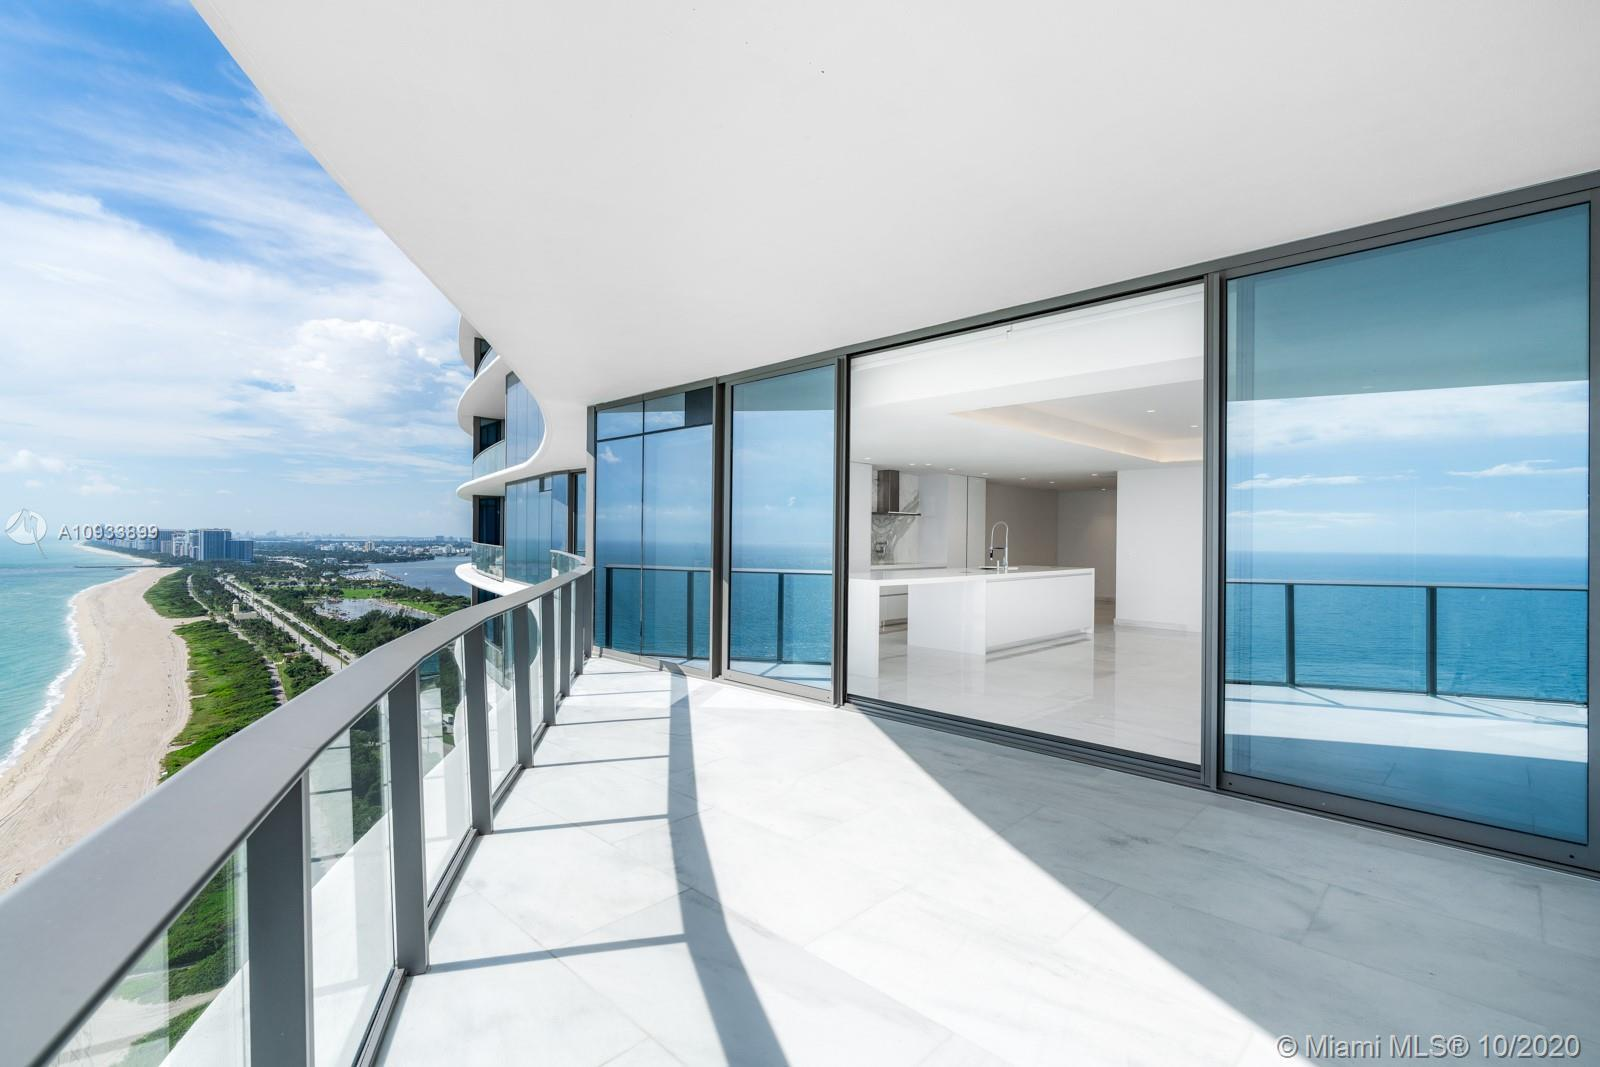 Be one of the first to move into this turnkey oasis in the Ritz Carlton Residences in Sunny Isles Be